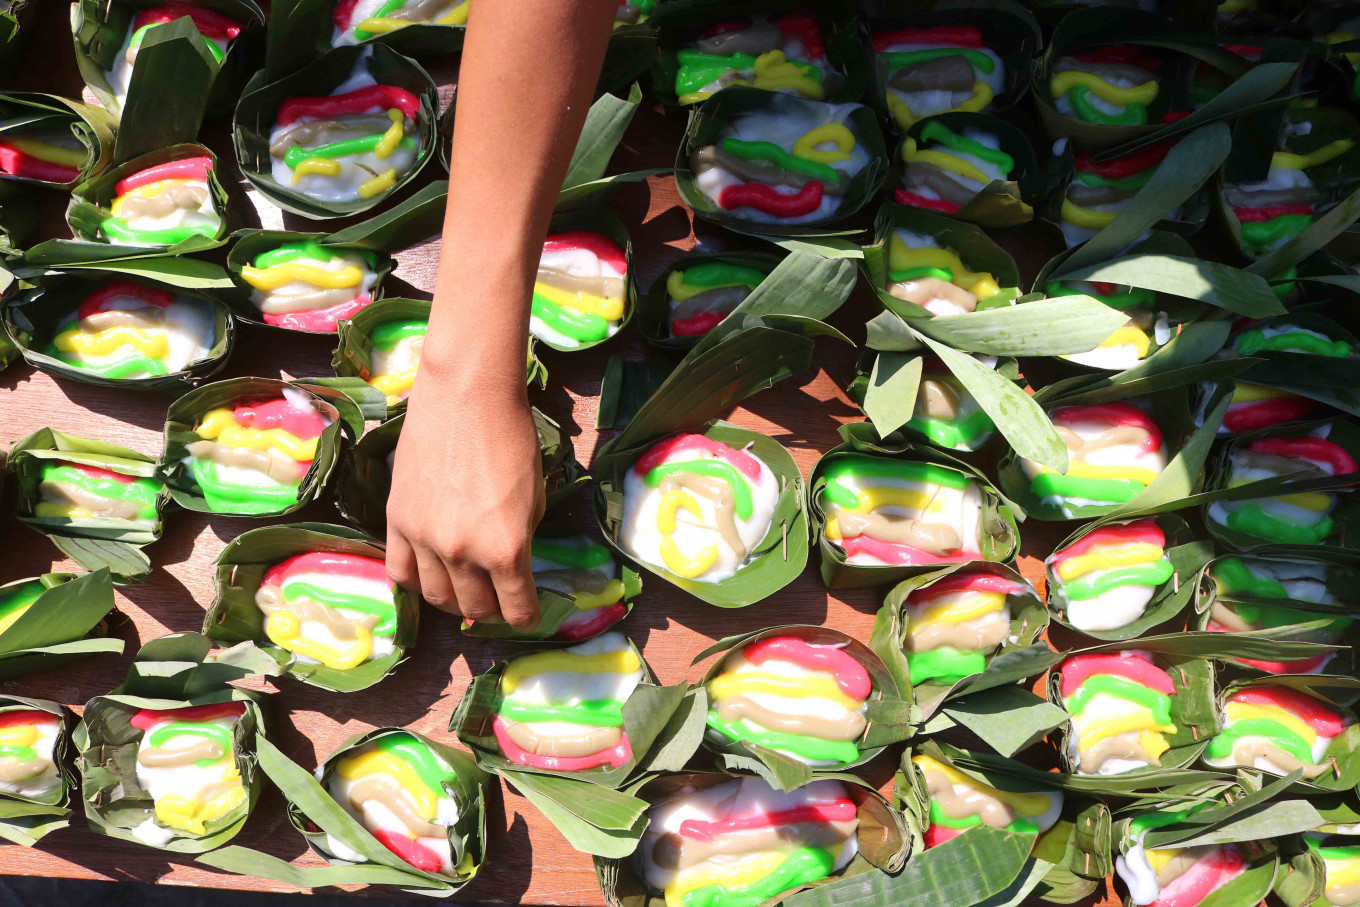 Portions of jenang served in leaves are prepared for residents during the Semarak Jenang Solo event to celebrate the 274th anniversary of Surakarta, Central Java, Sunday. JP/Maksum Nur Fauzan